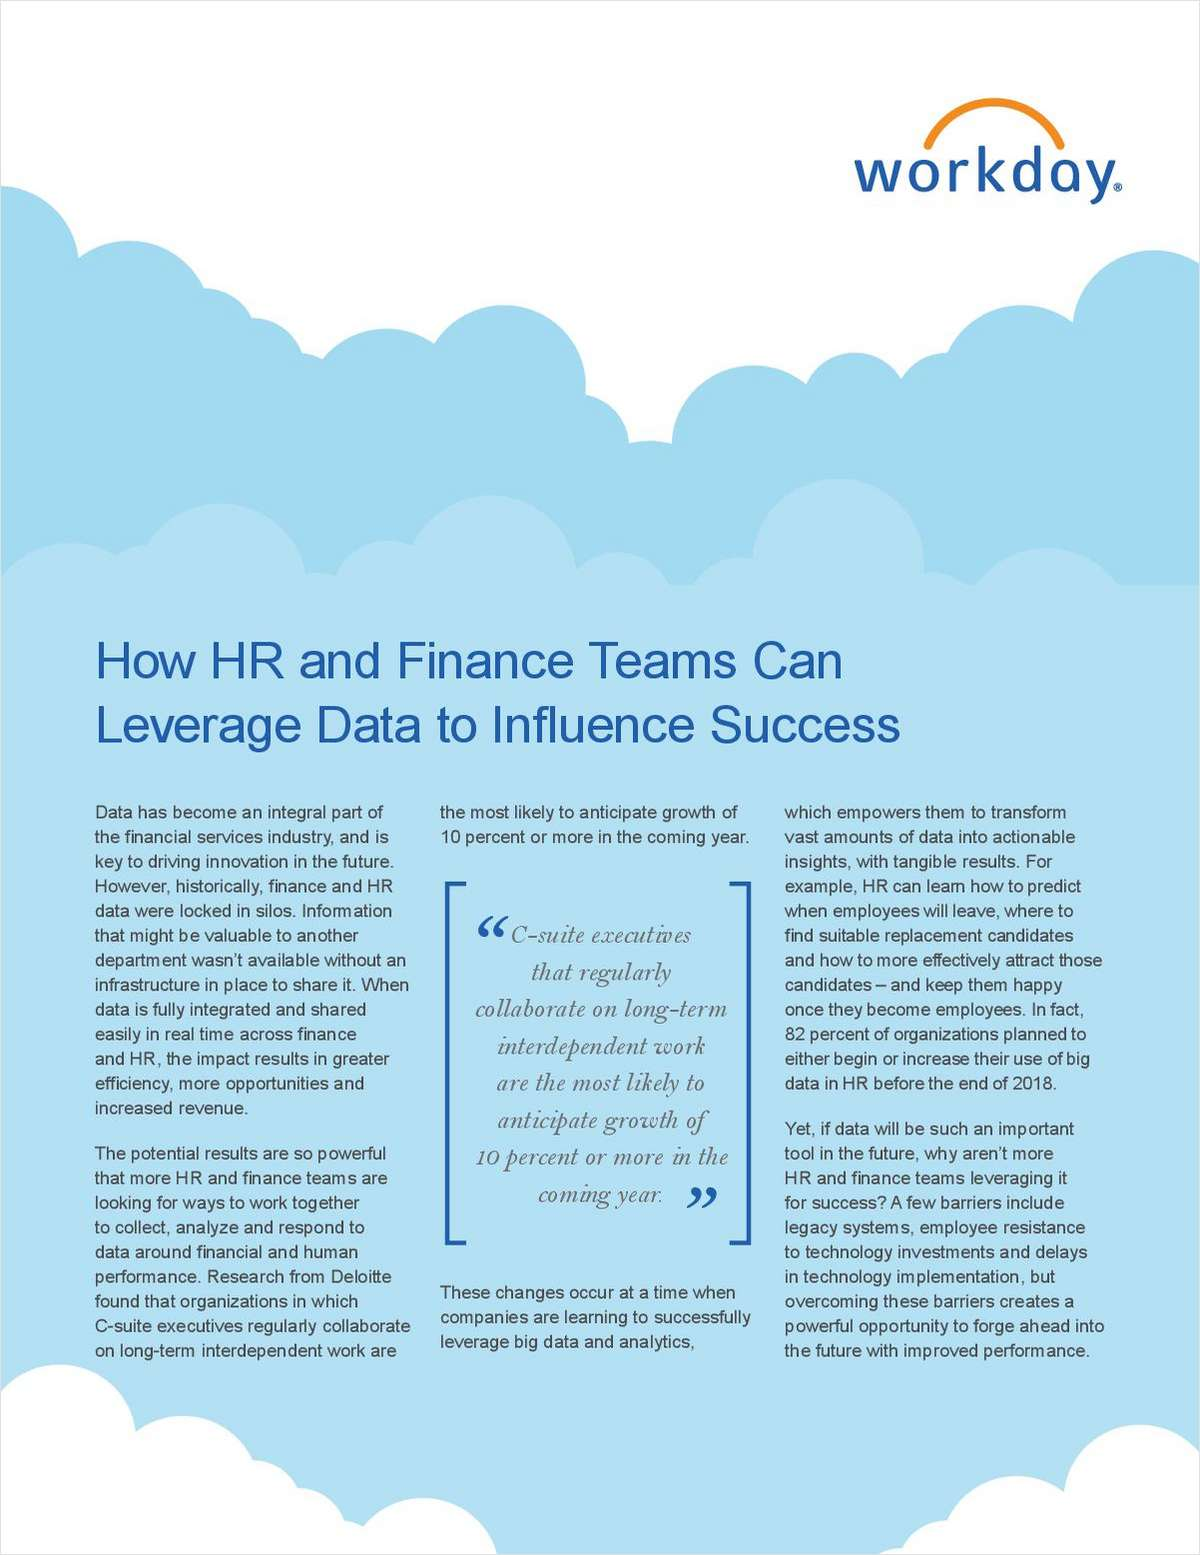 How Firm HR and Finance Teams Can Leverage Data for Mutual Success